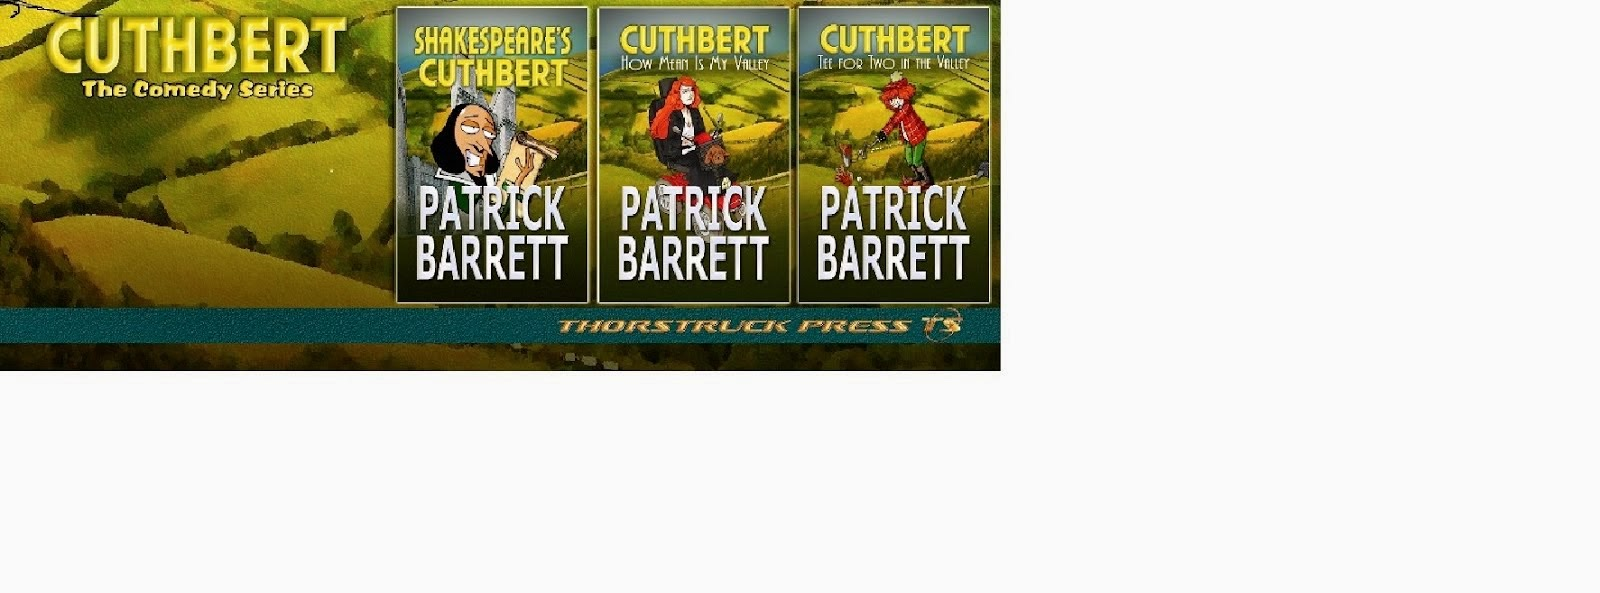 CUTHBERT SERIES